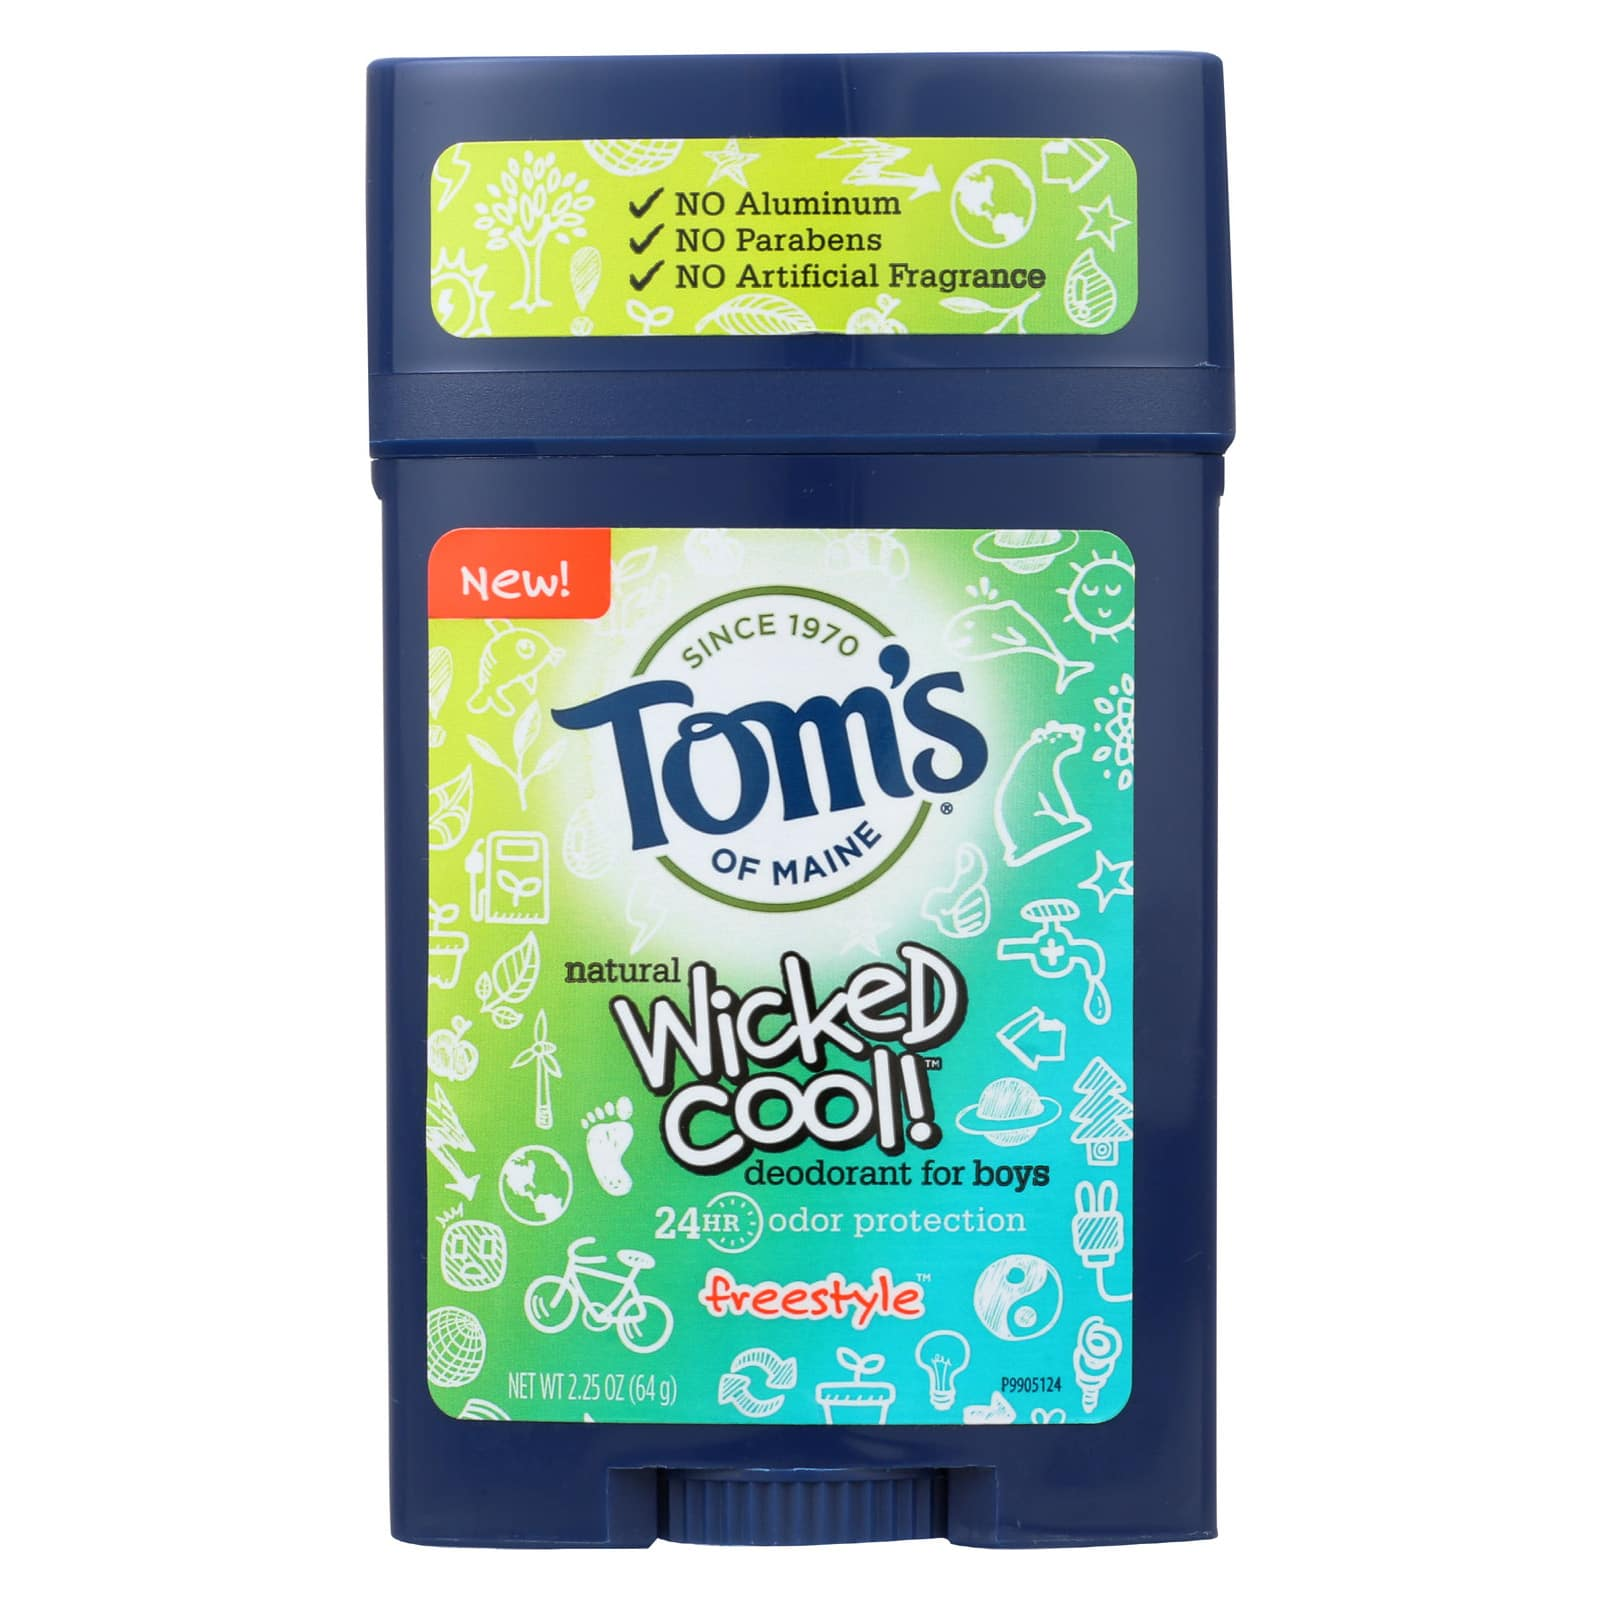 6-Pack of 2.25oz Tom's of Maine Natural Deodorant Stick for Boys (Wicked Cool) for $5.06